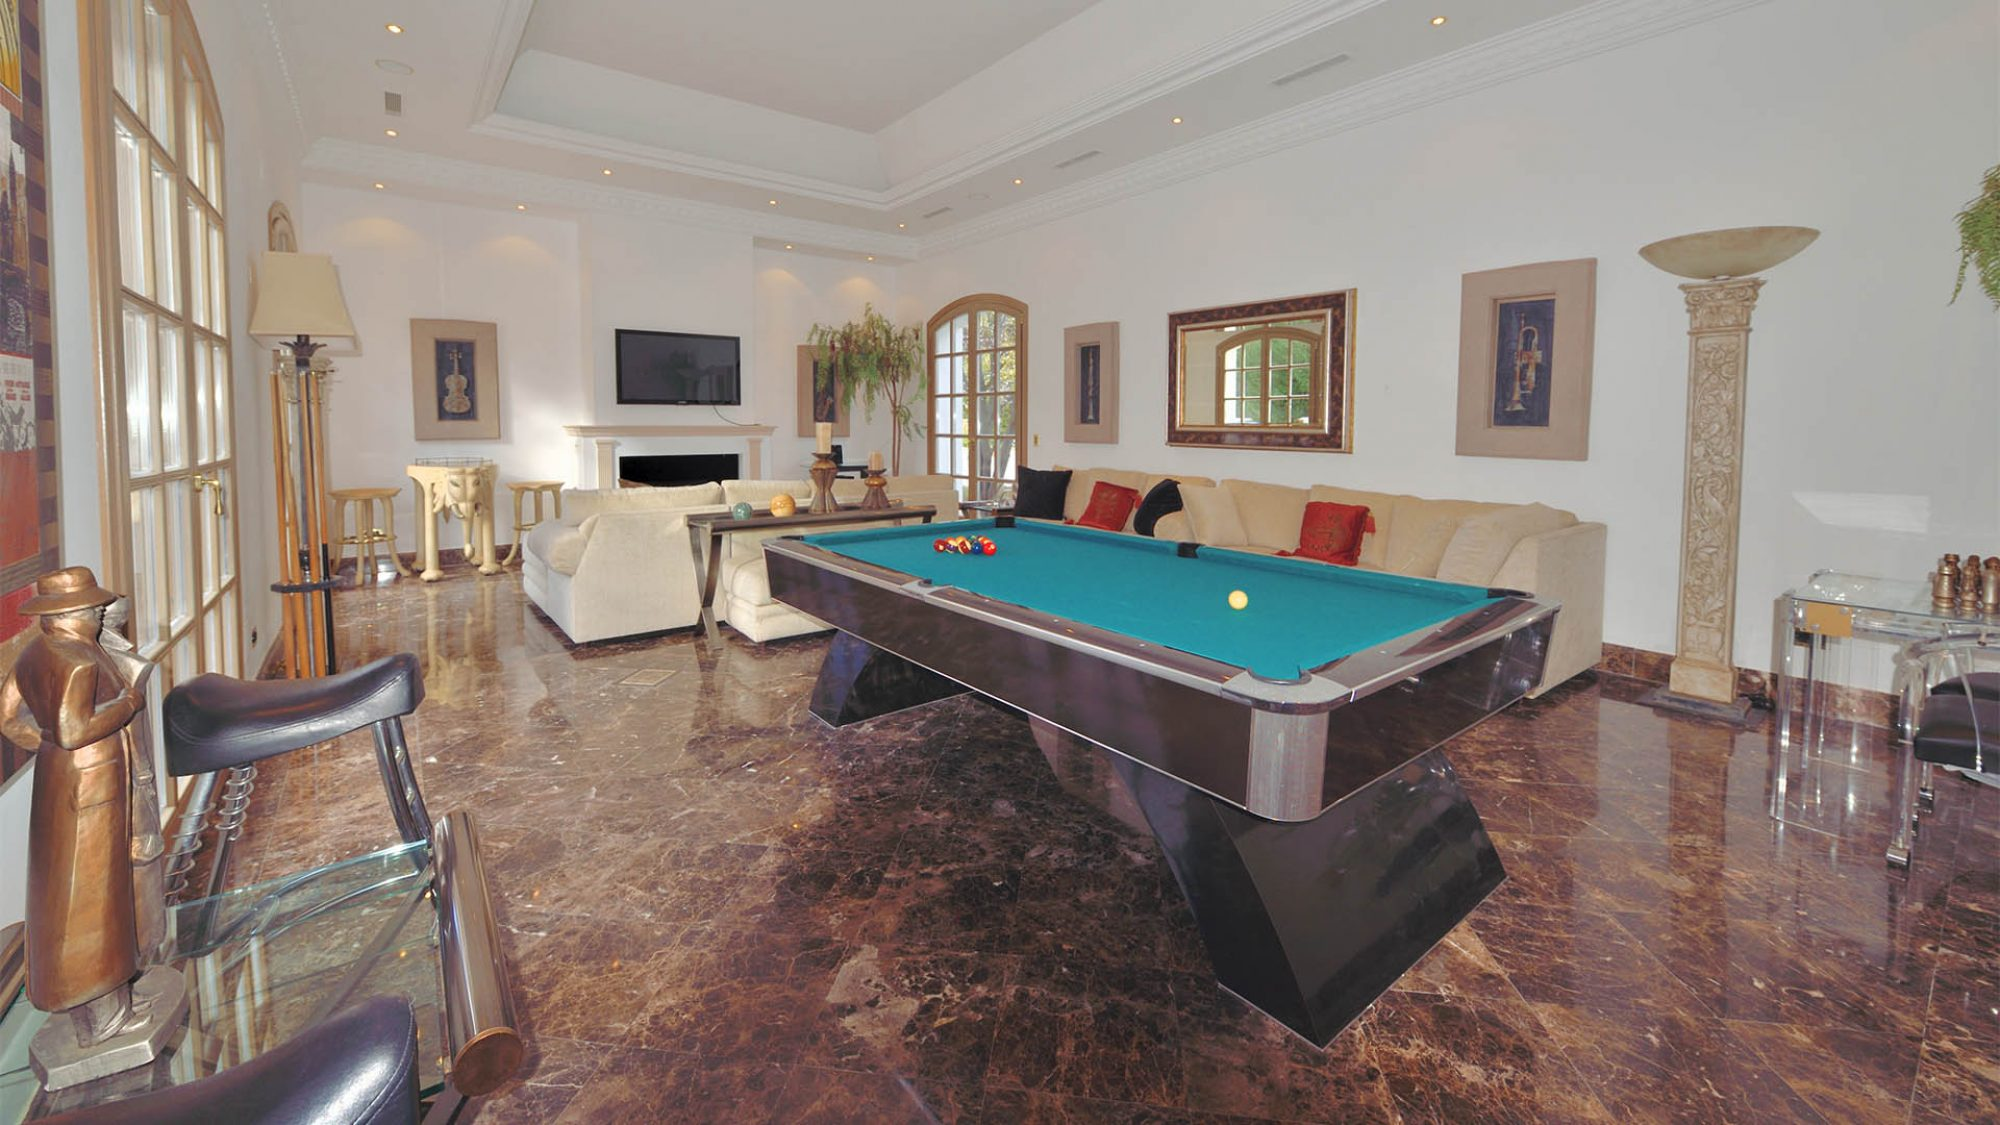 zagaleta villa billiards room